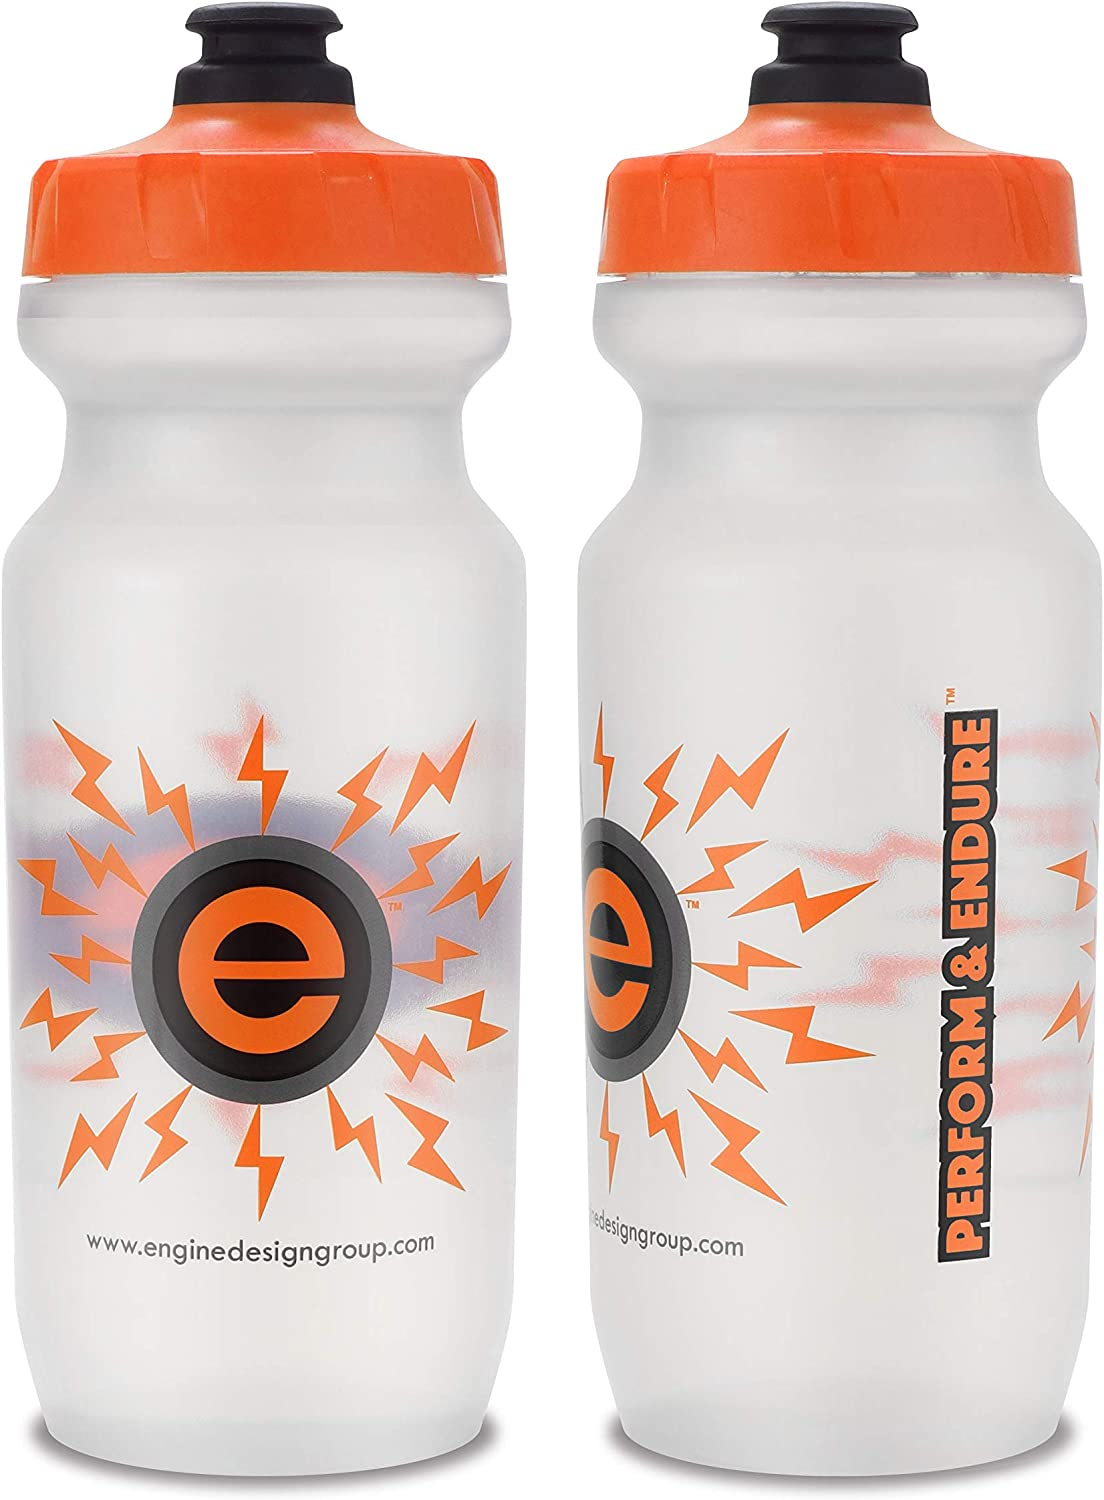 NGN Sport - High Performance Bicycle | Bike Water Bottle for Triathlon, MTB, and Road Cycling - 21 oz (2-Pack) (Clear/ Orange (2-Pack))